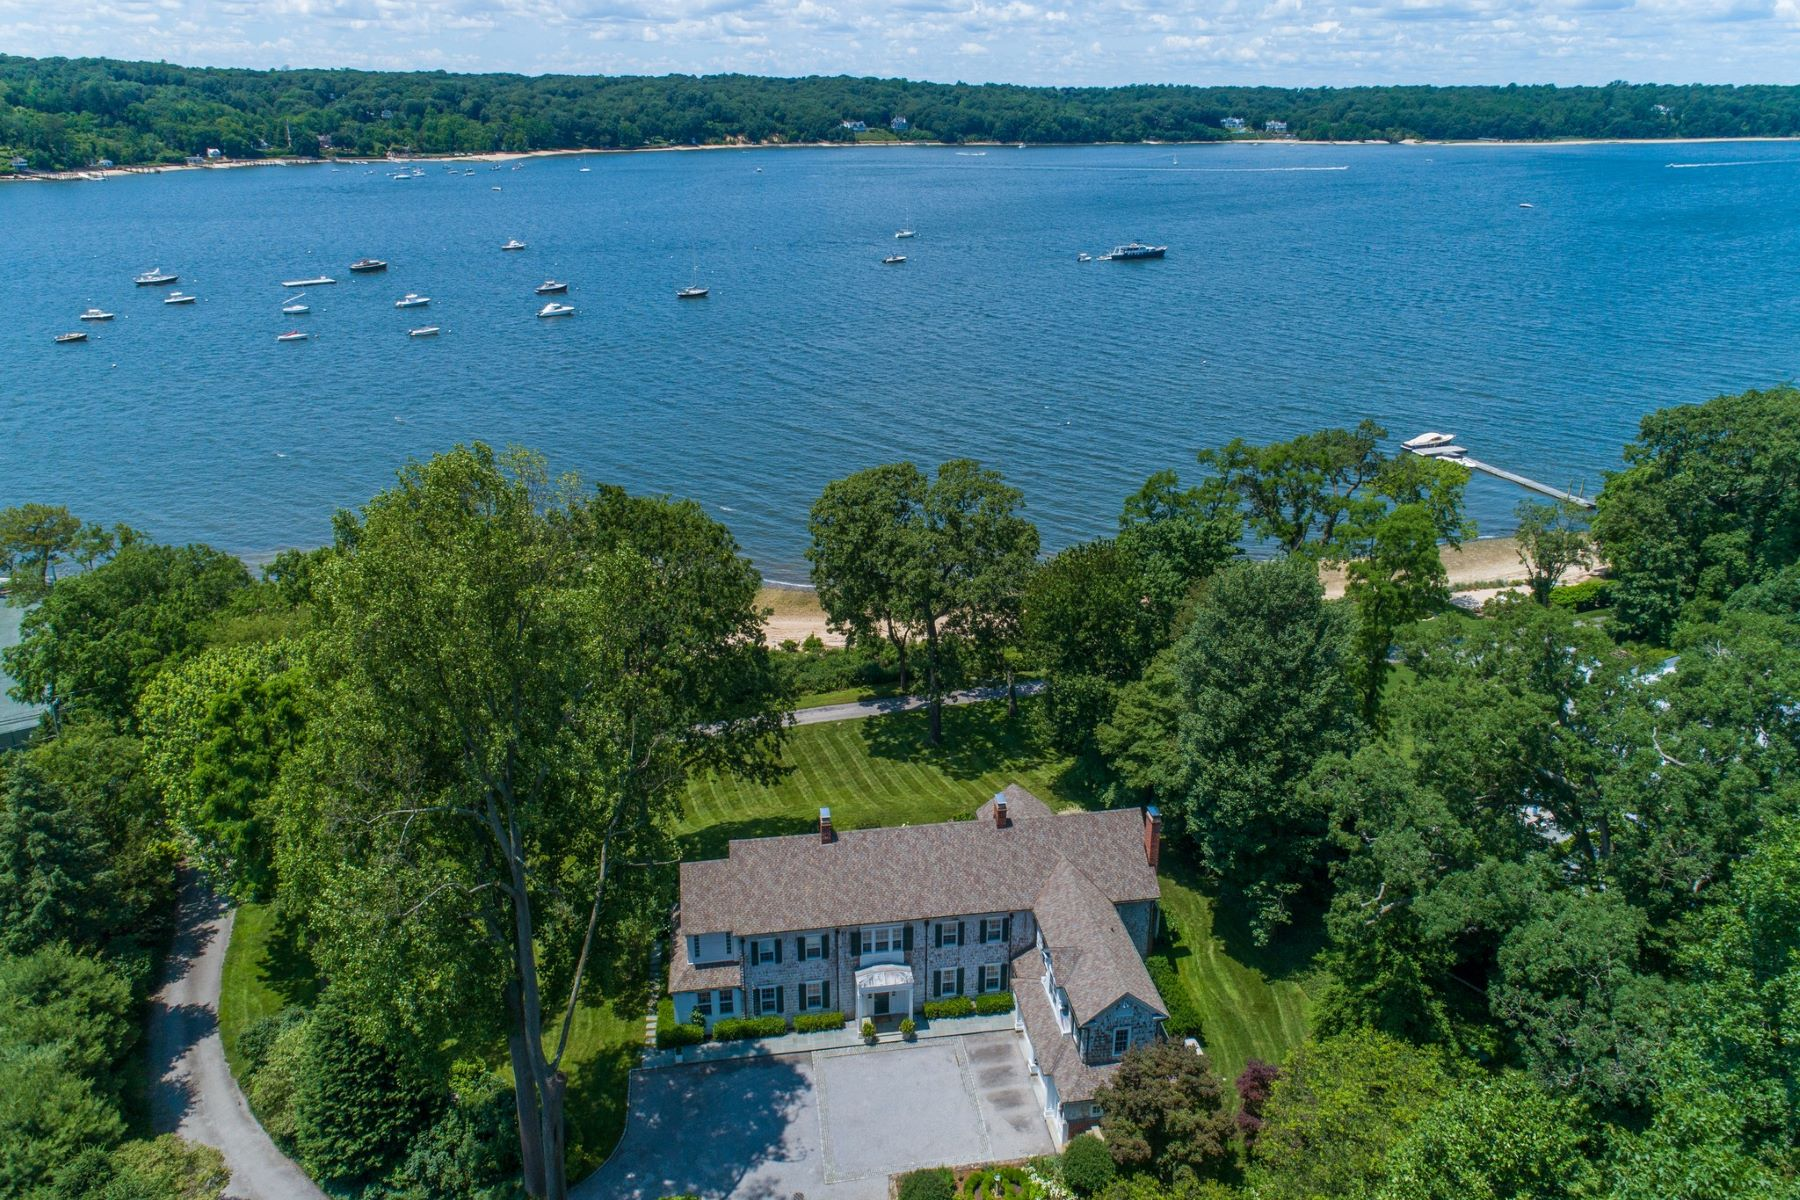 Single Family Homes for Sale at Cold Spring Hrbr 108 Shore Rd Cold Spring Harbor, New York 11724 United States